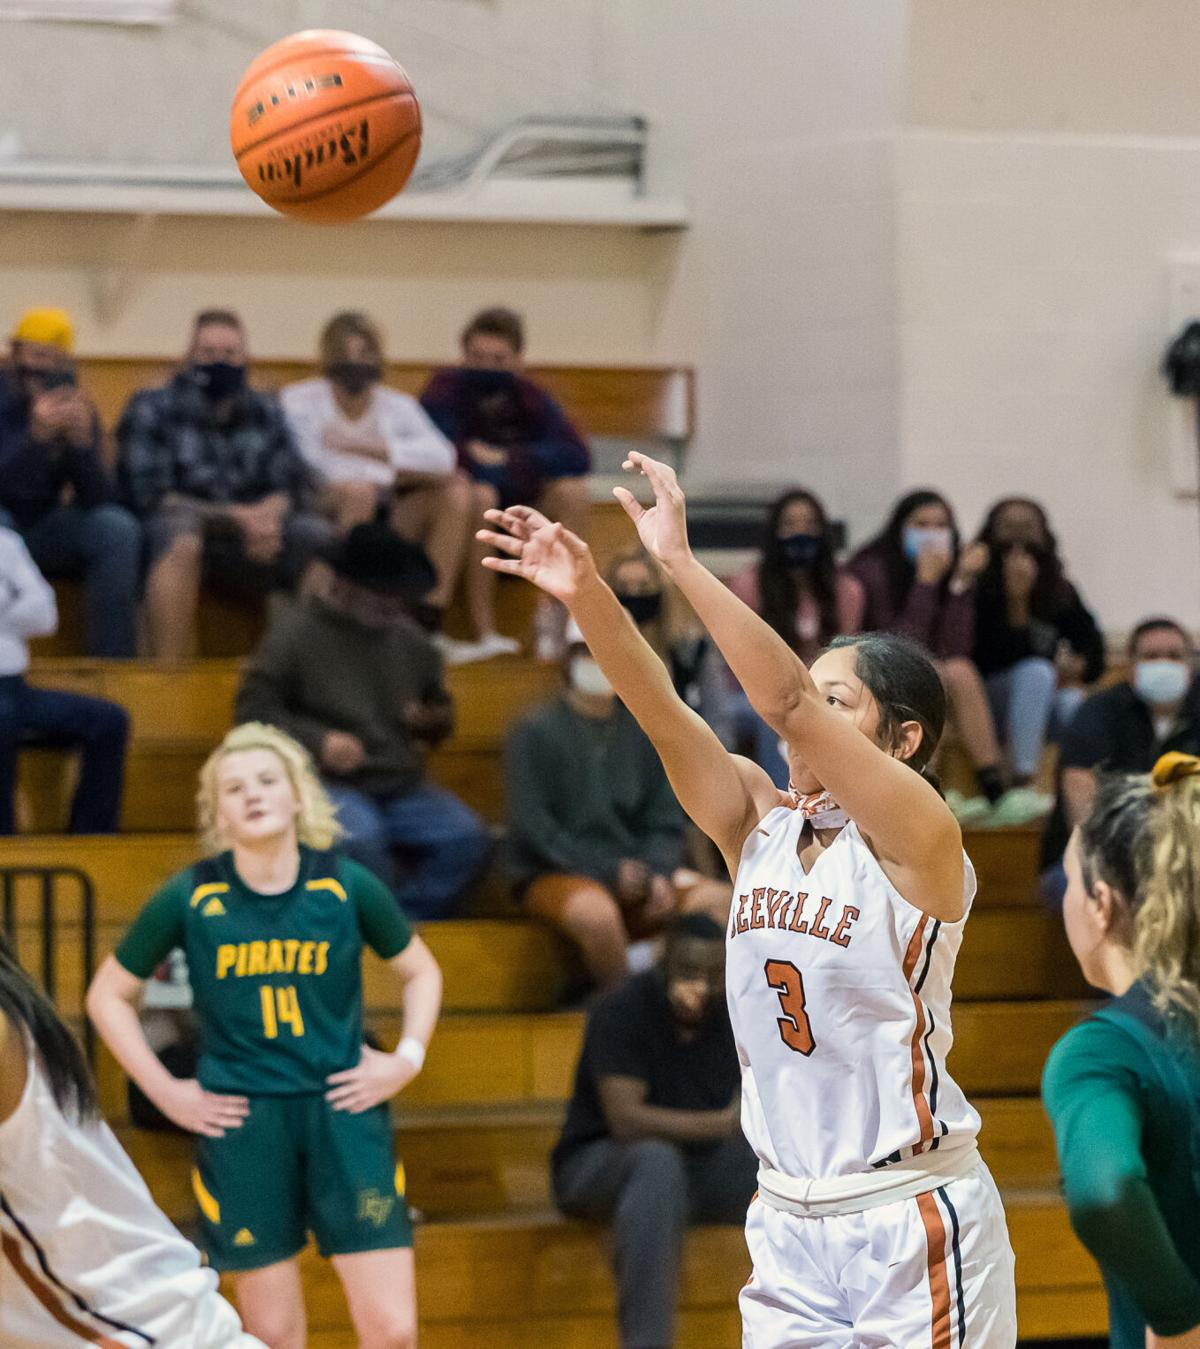 Lady Trojans fall for first time in district play